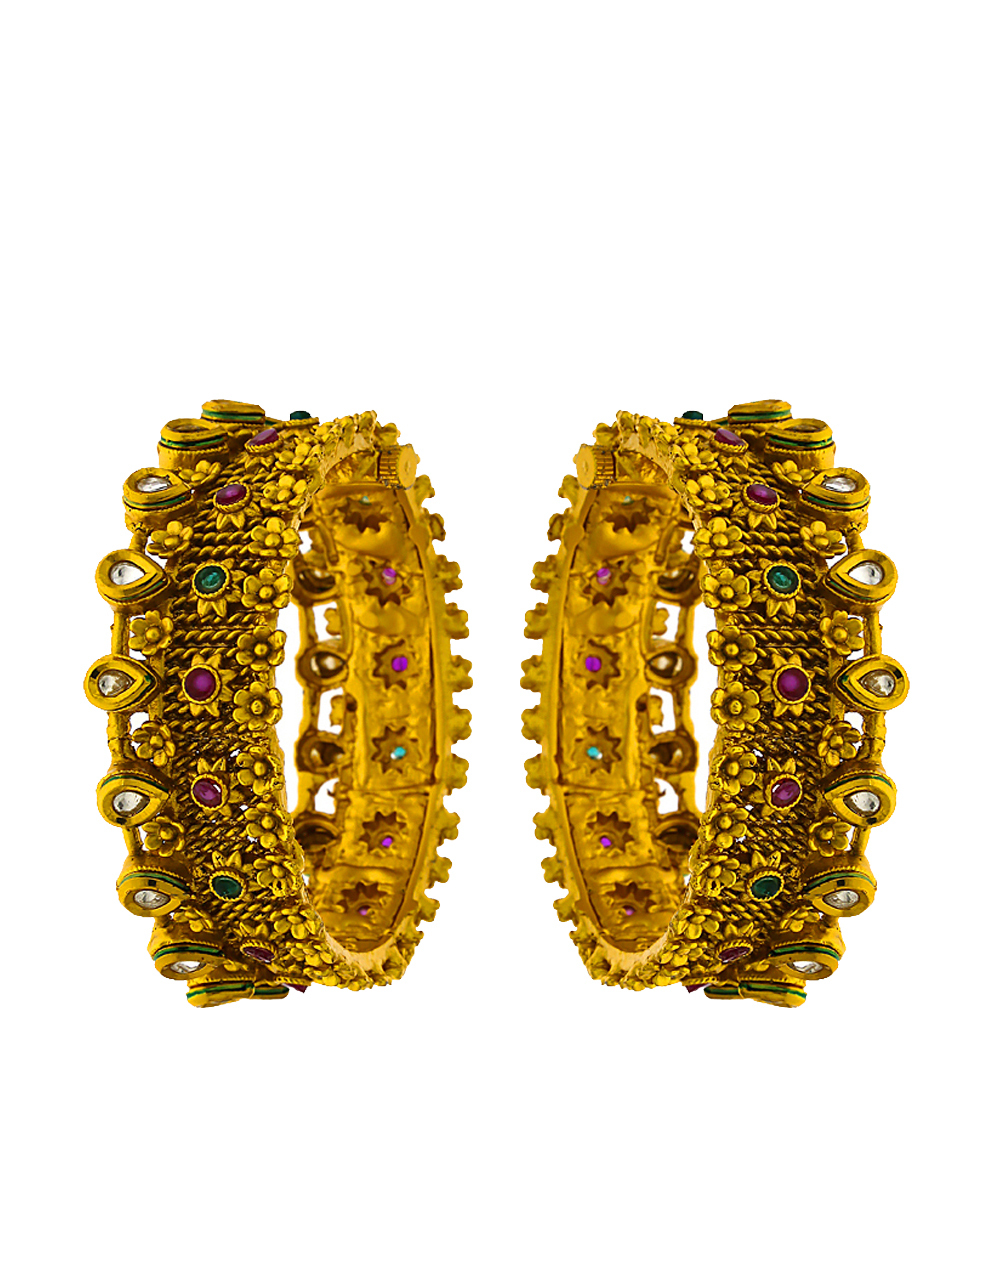 Fashionable Floral Designed Multi-colour stone studded Traditional Bangles for Women.